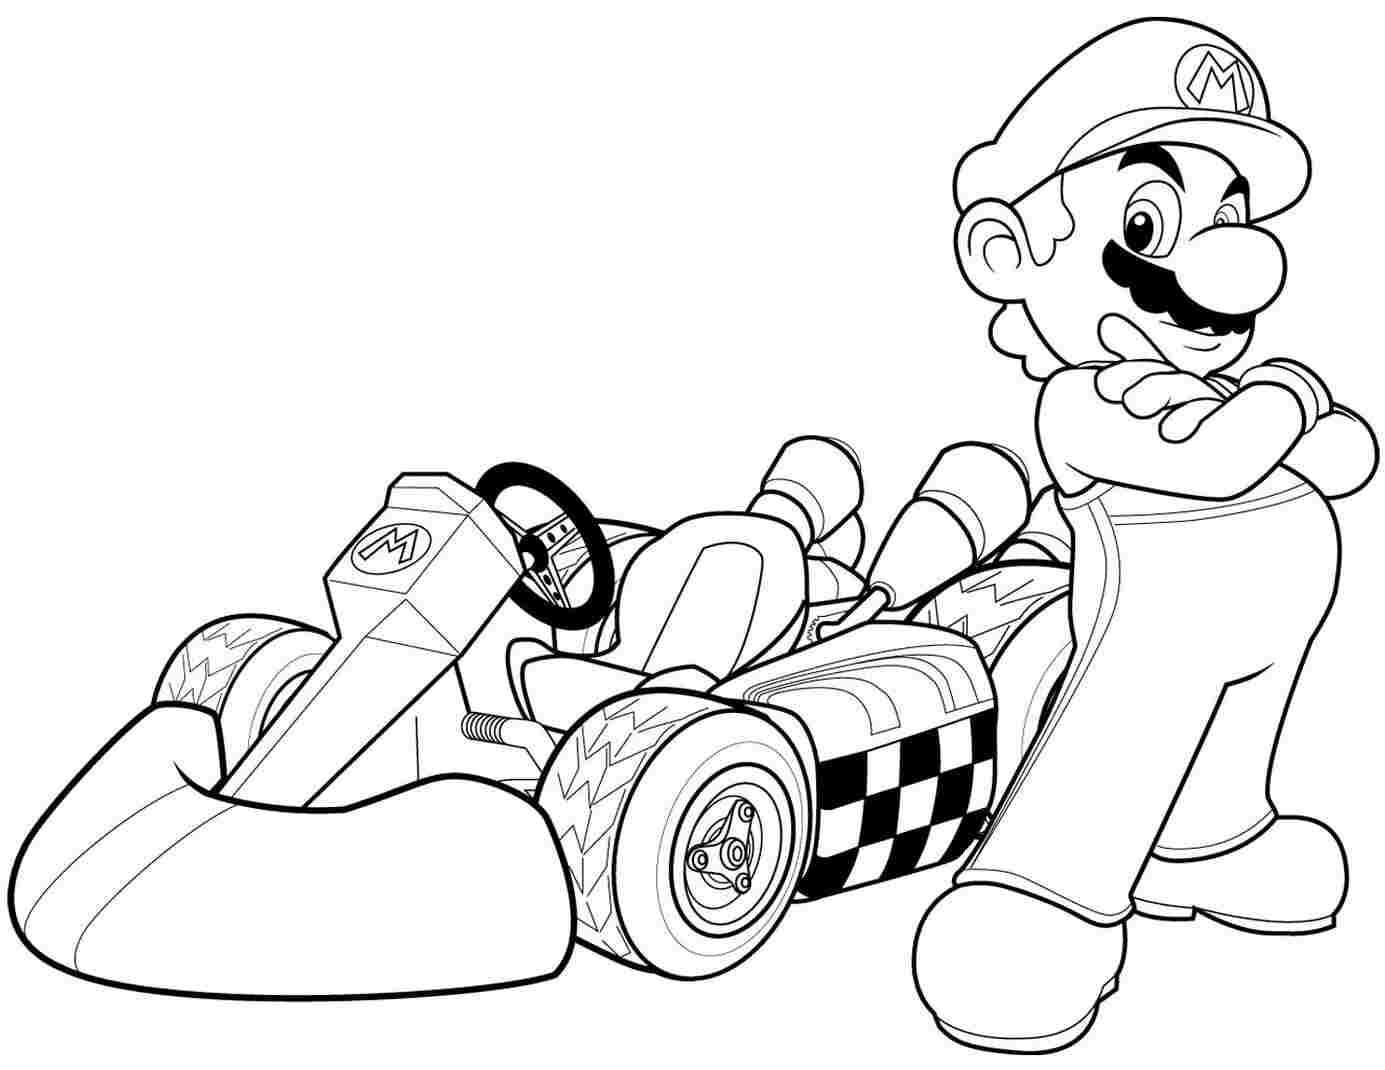 Mario and racing car in Mario Kart Wii Coloring Page